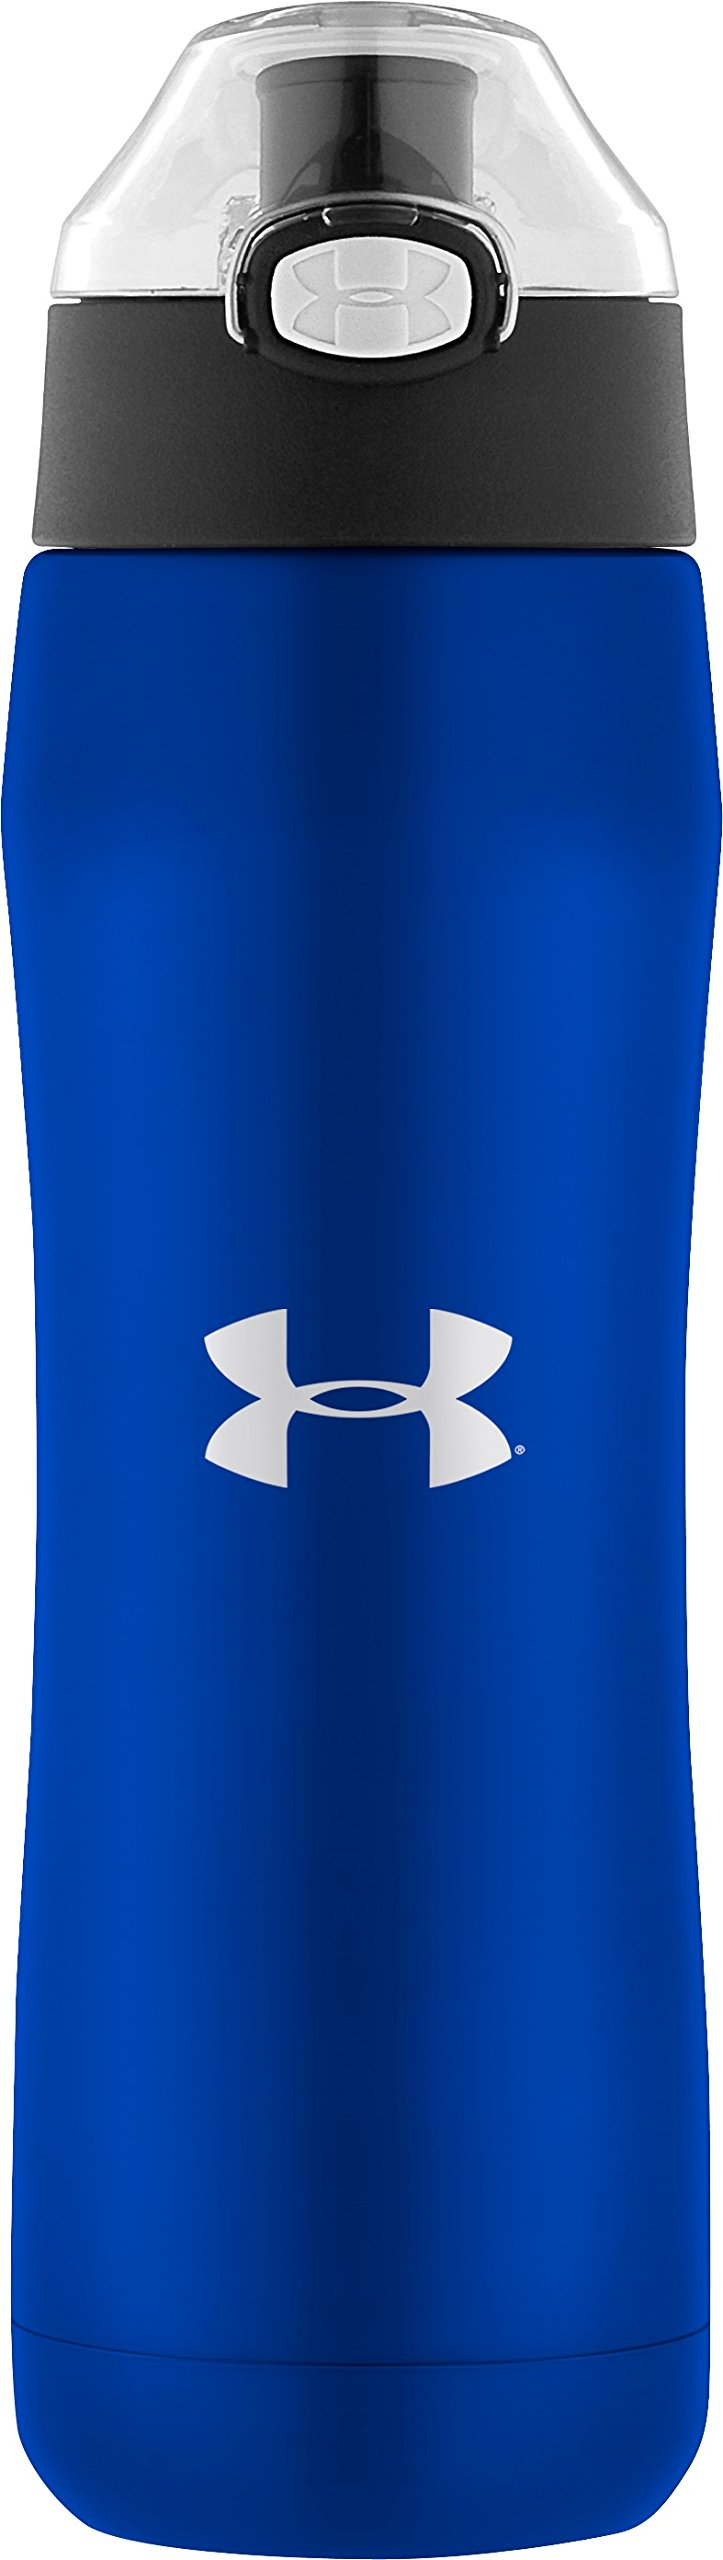 Under Armour Beyond 18 Ounce Stainless Steel Water Bottle, Royal Blue by Thermos